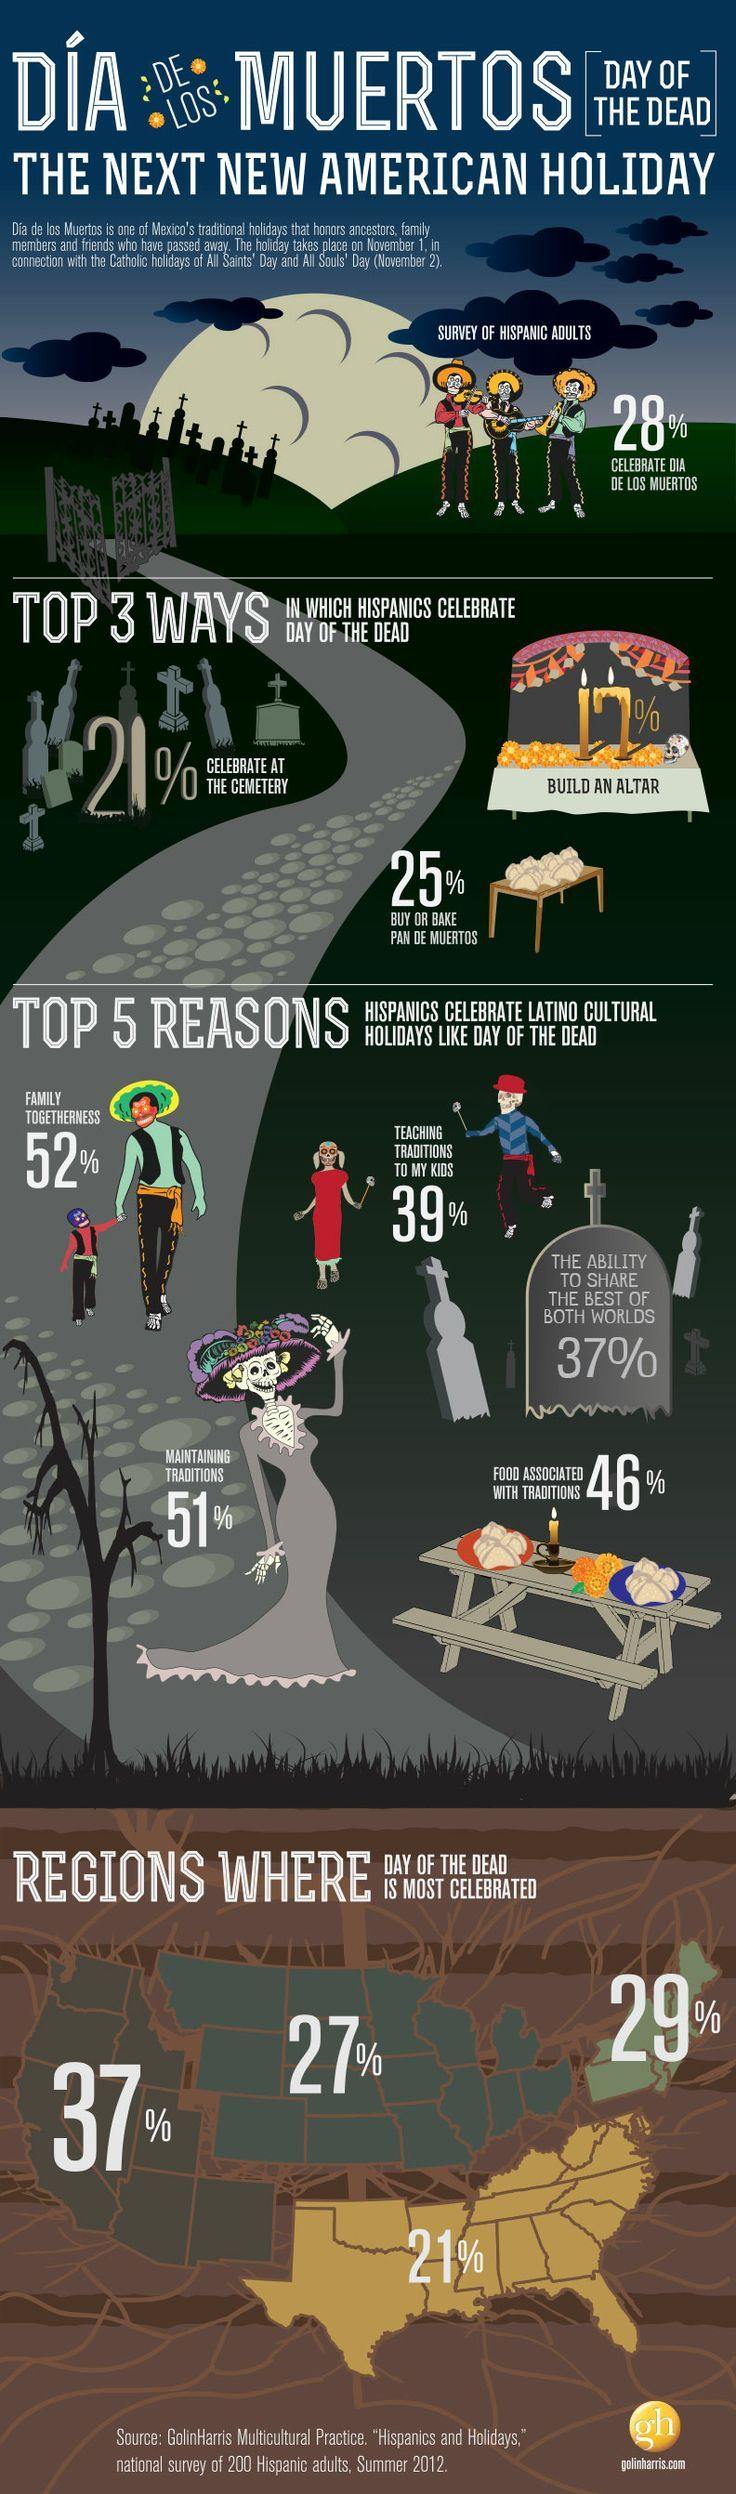 Excellent infographic on who celebrates Day of the Dead in the U.S.! ¡Feliz Día de los Muertos!